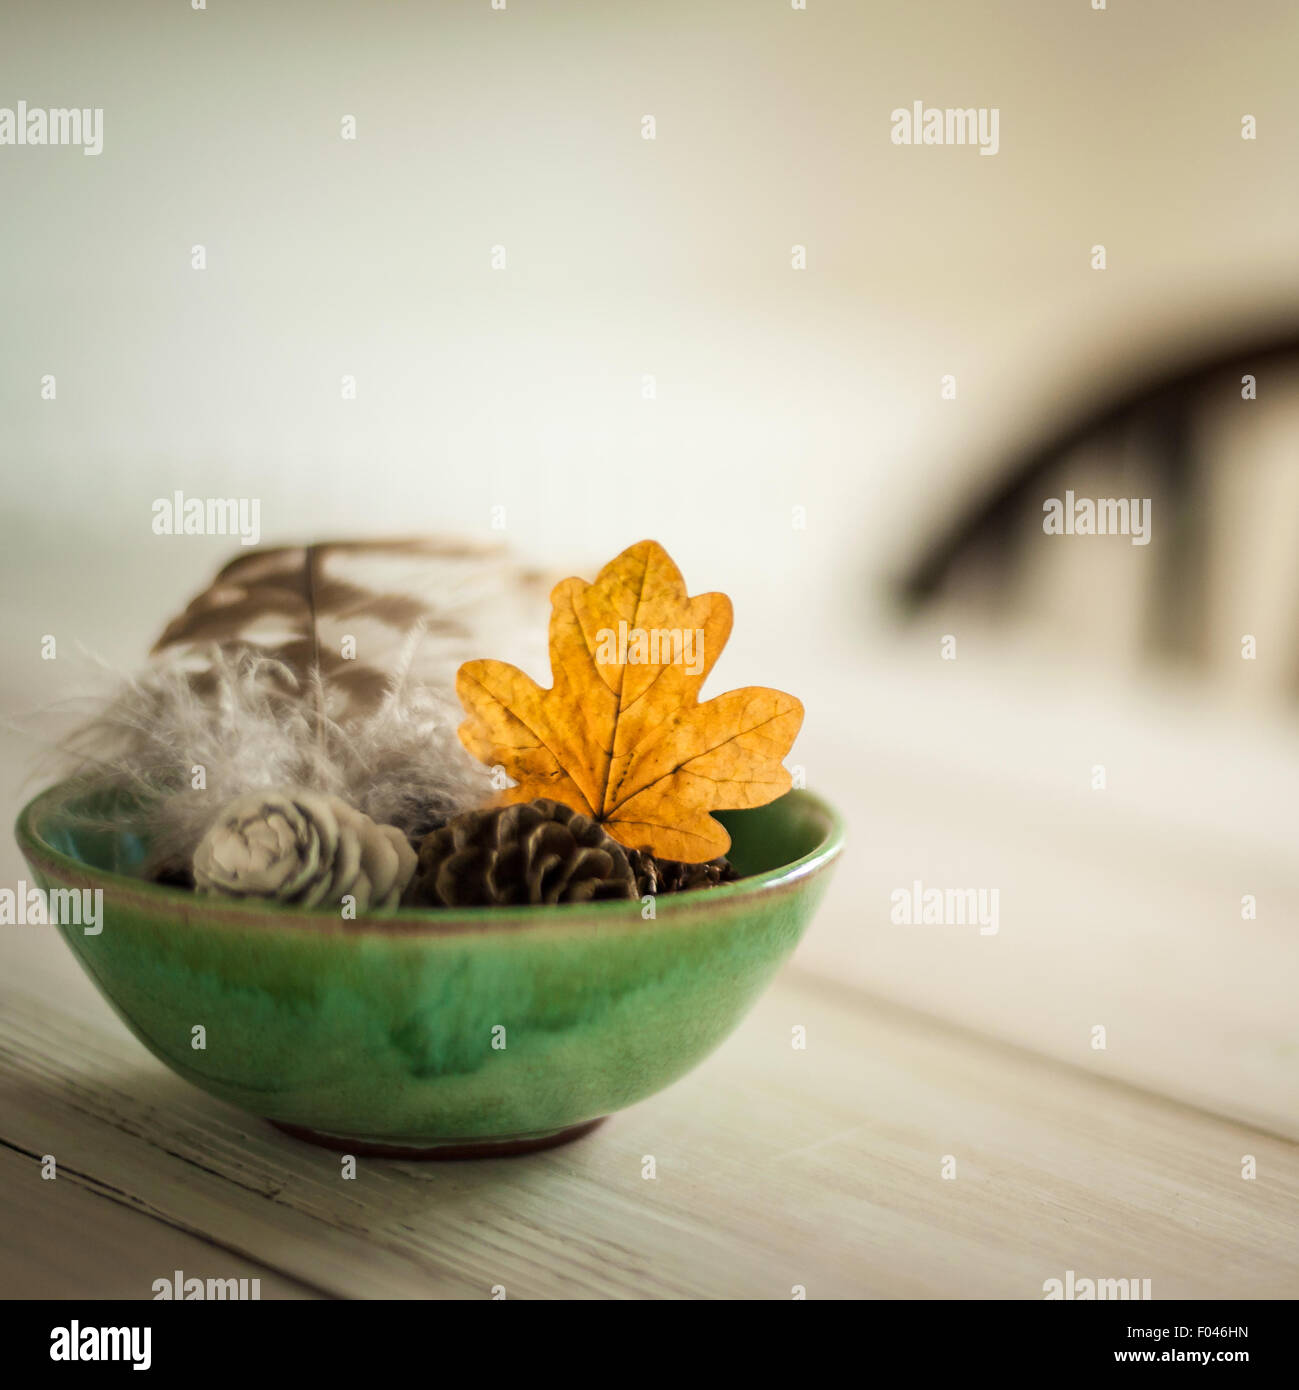 gathered leaf, pinecones and feather in a green bowl on the table, with blurred chair in the background - Stock Image